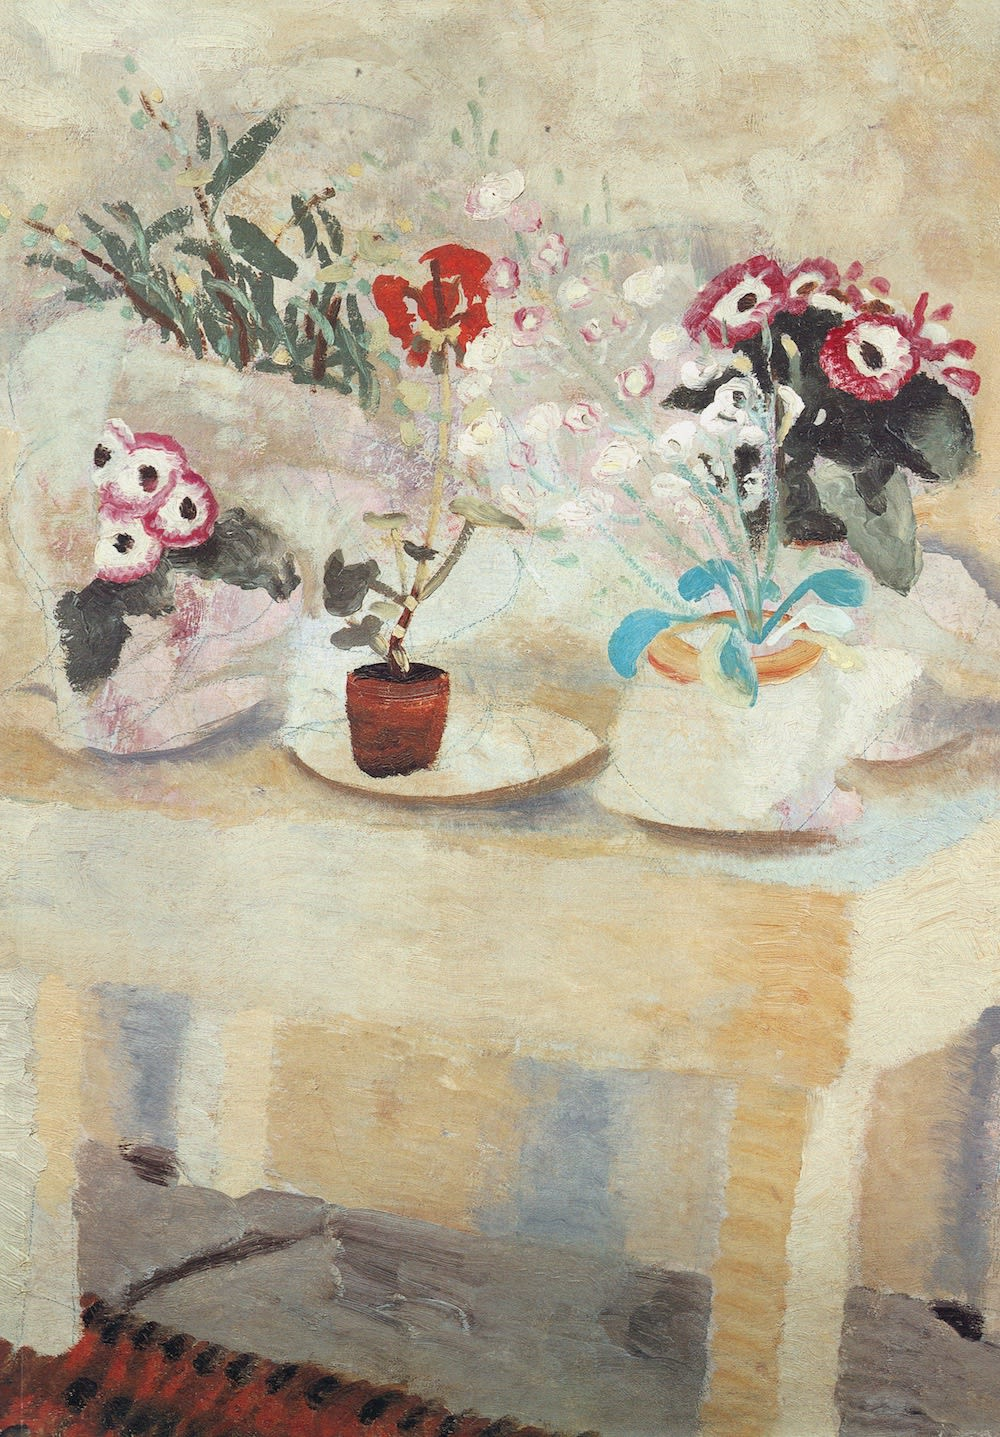 Winifred NICHOLSON (1893 – 1981) Flower Table No. 4, c.1929 Oil on canvas 30 x 24 inches / 76 x 61 cm